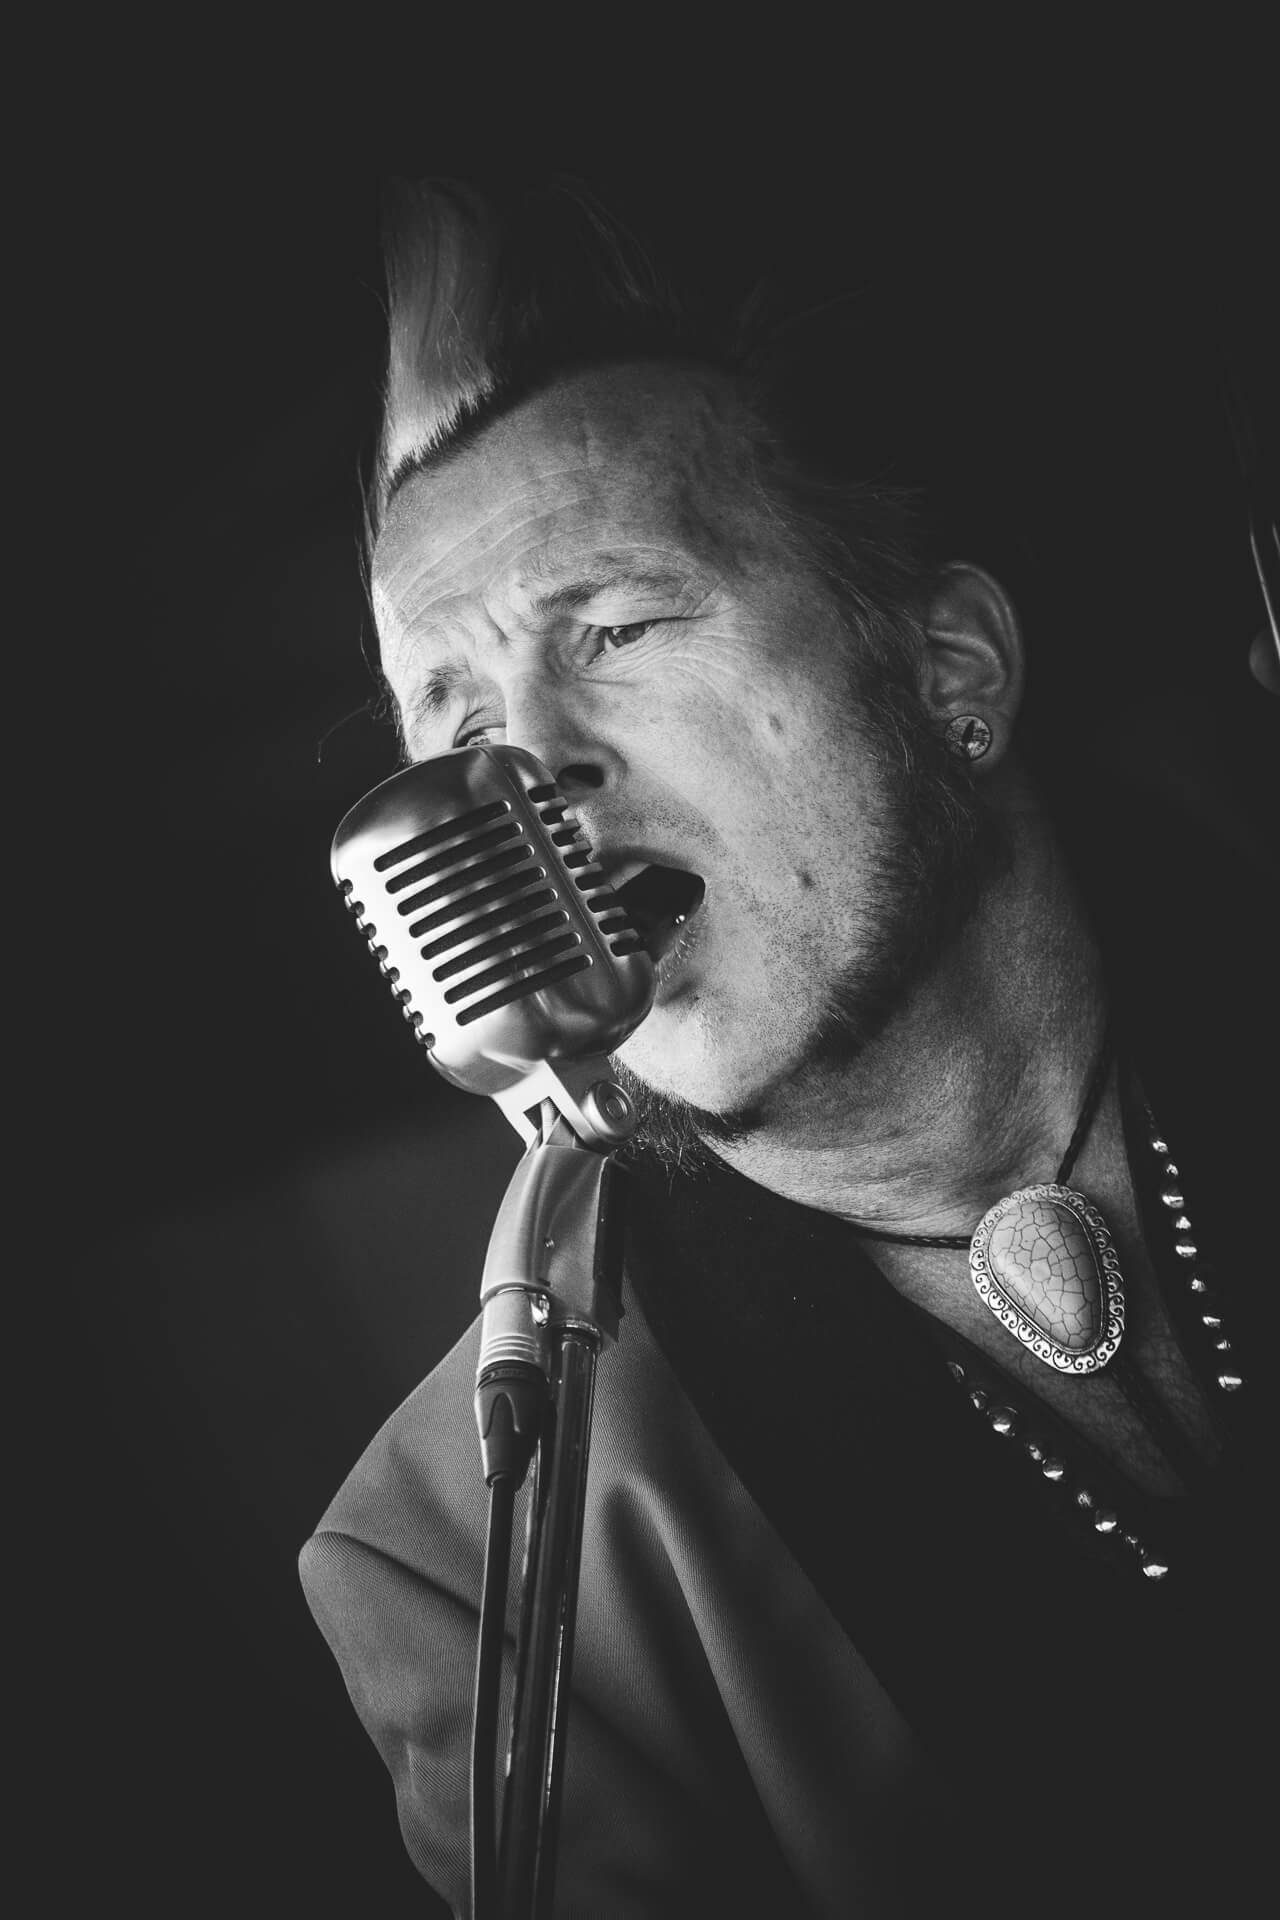 A close up Black & White photo of Gaz Le Bass of The Delray Rockets (in a drape jacket) singing into a Sure Super 55 (a 1950's style) microphone at The Drunken Monkey Festival 2017